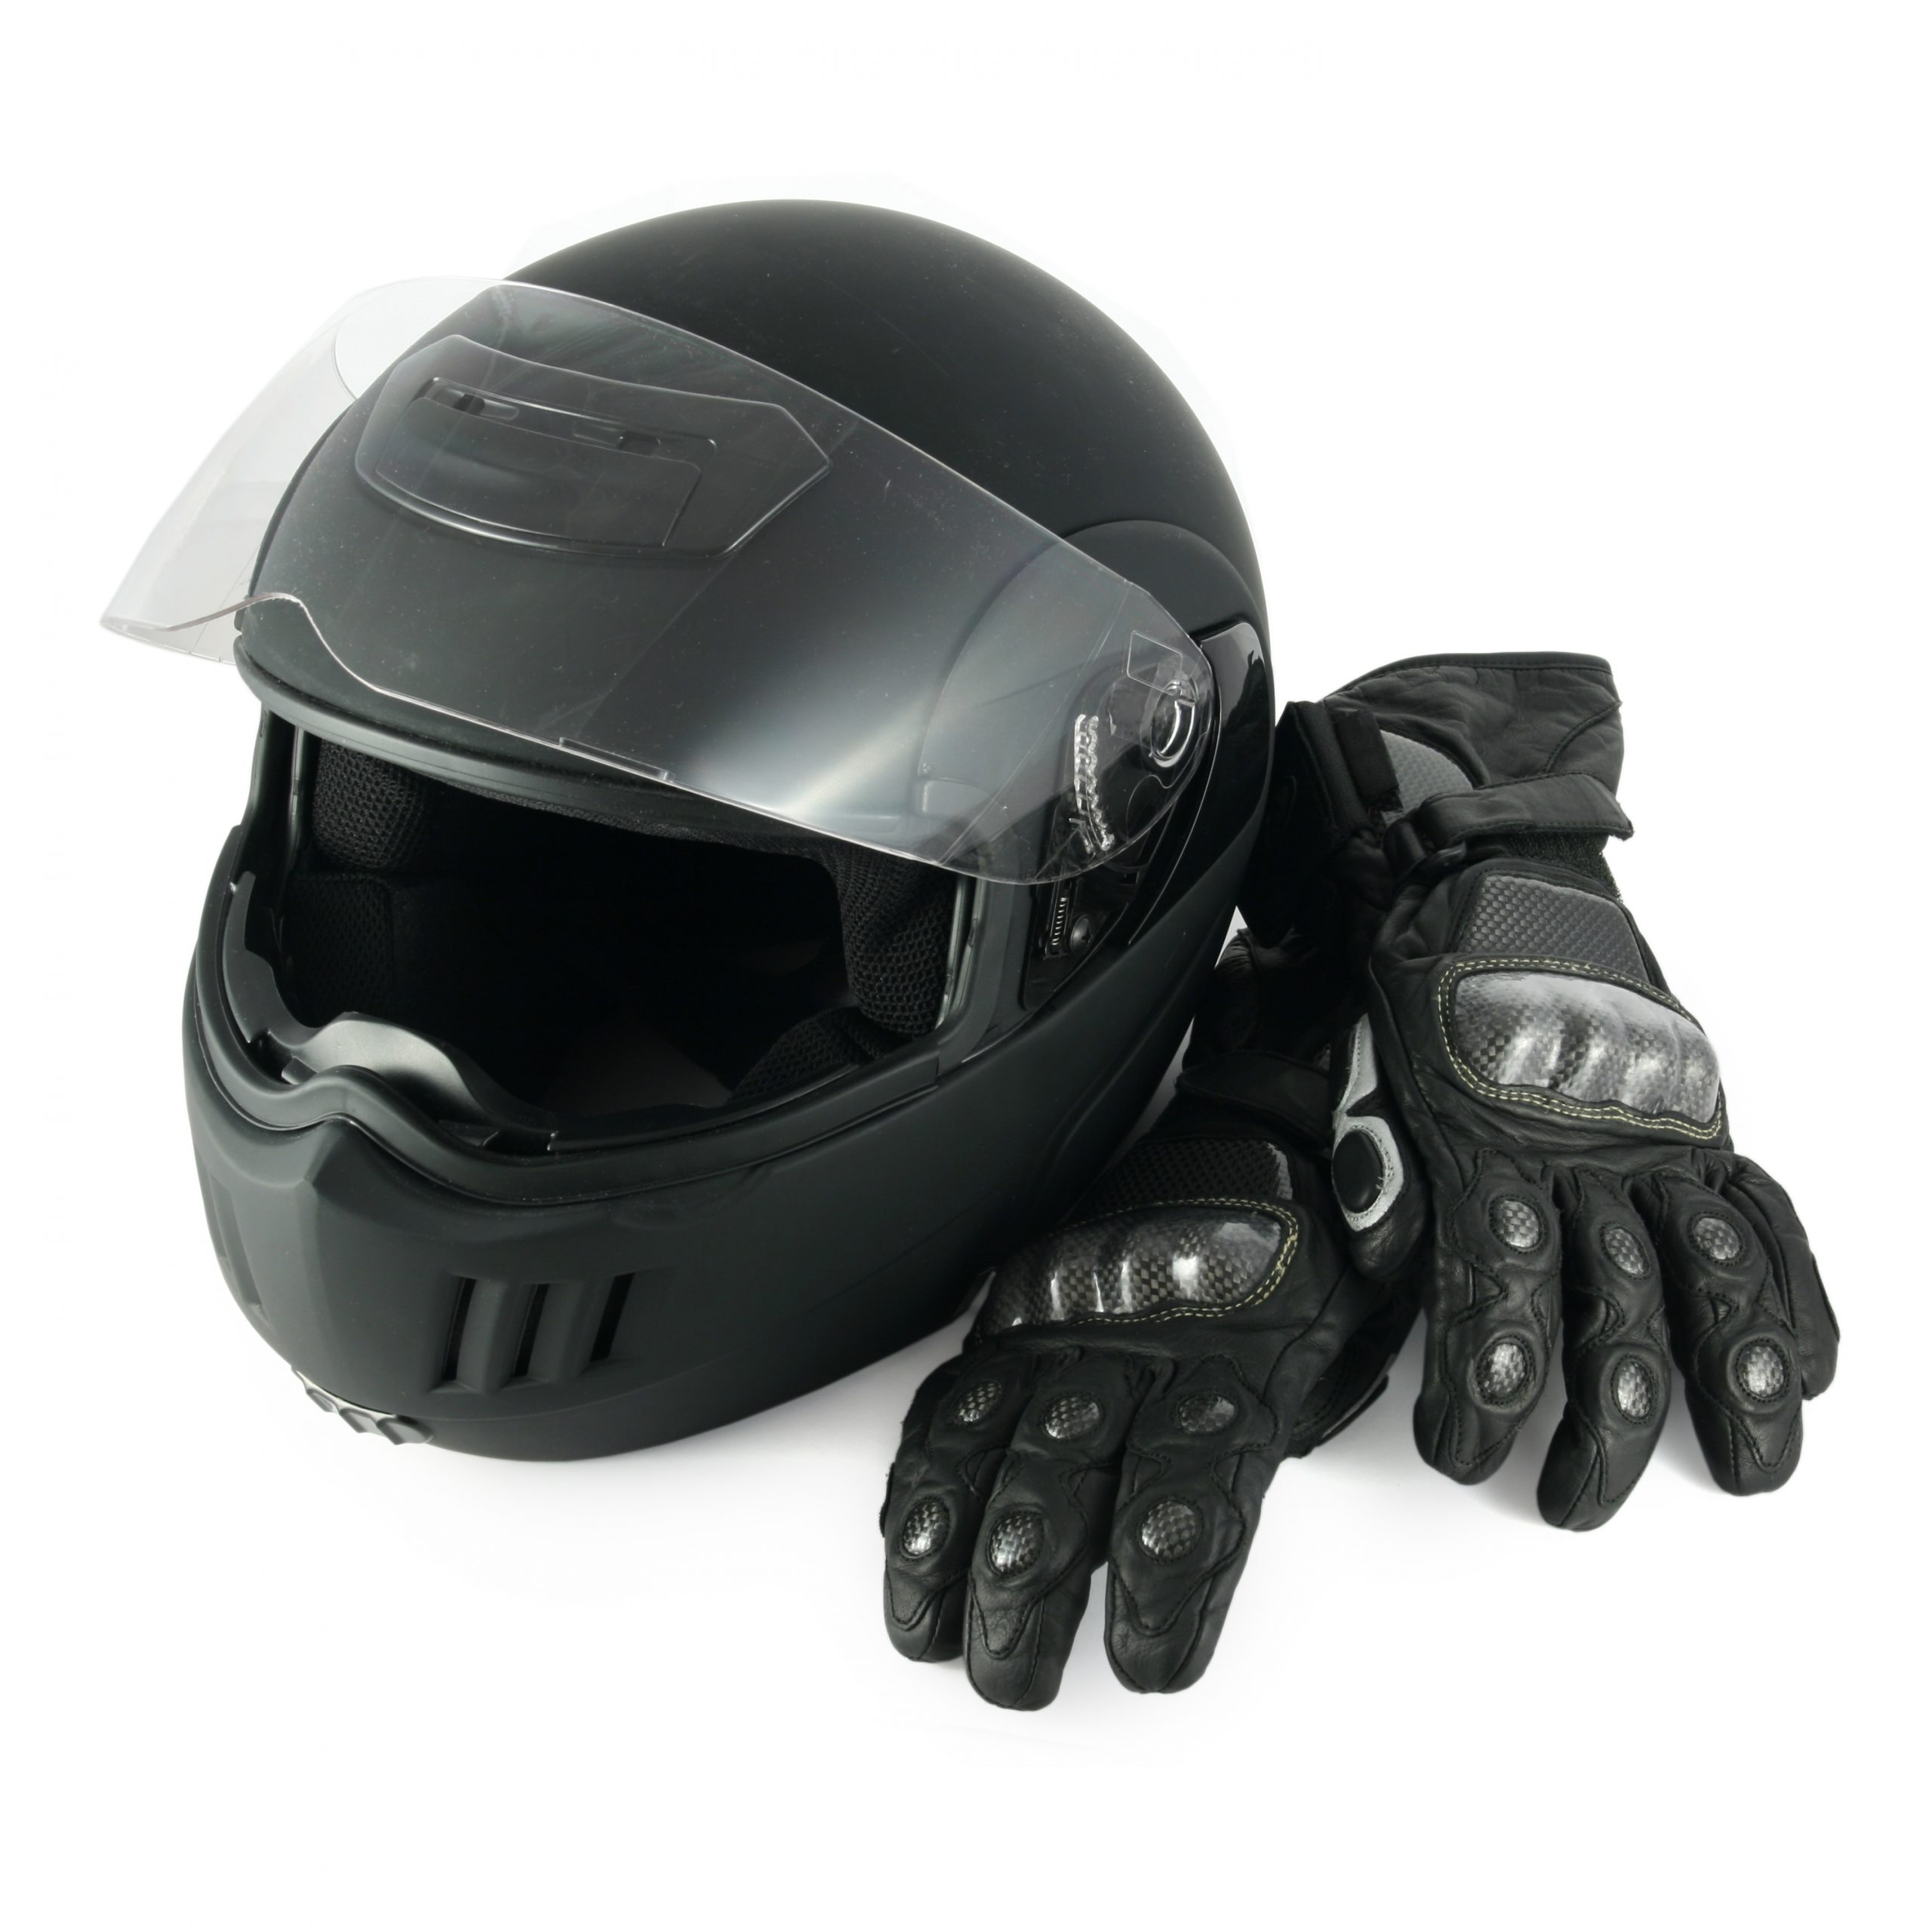 Helmet and Gloves are necessary